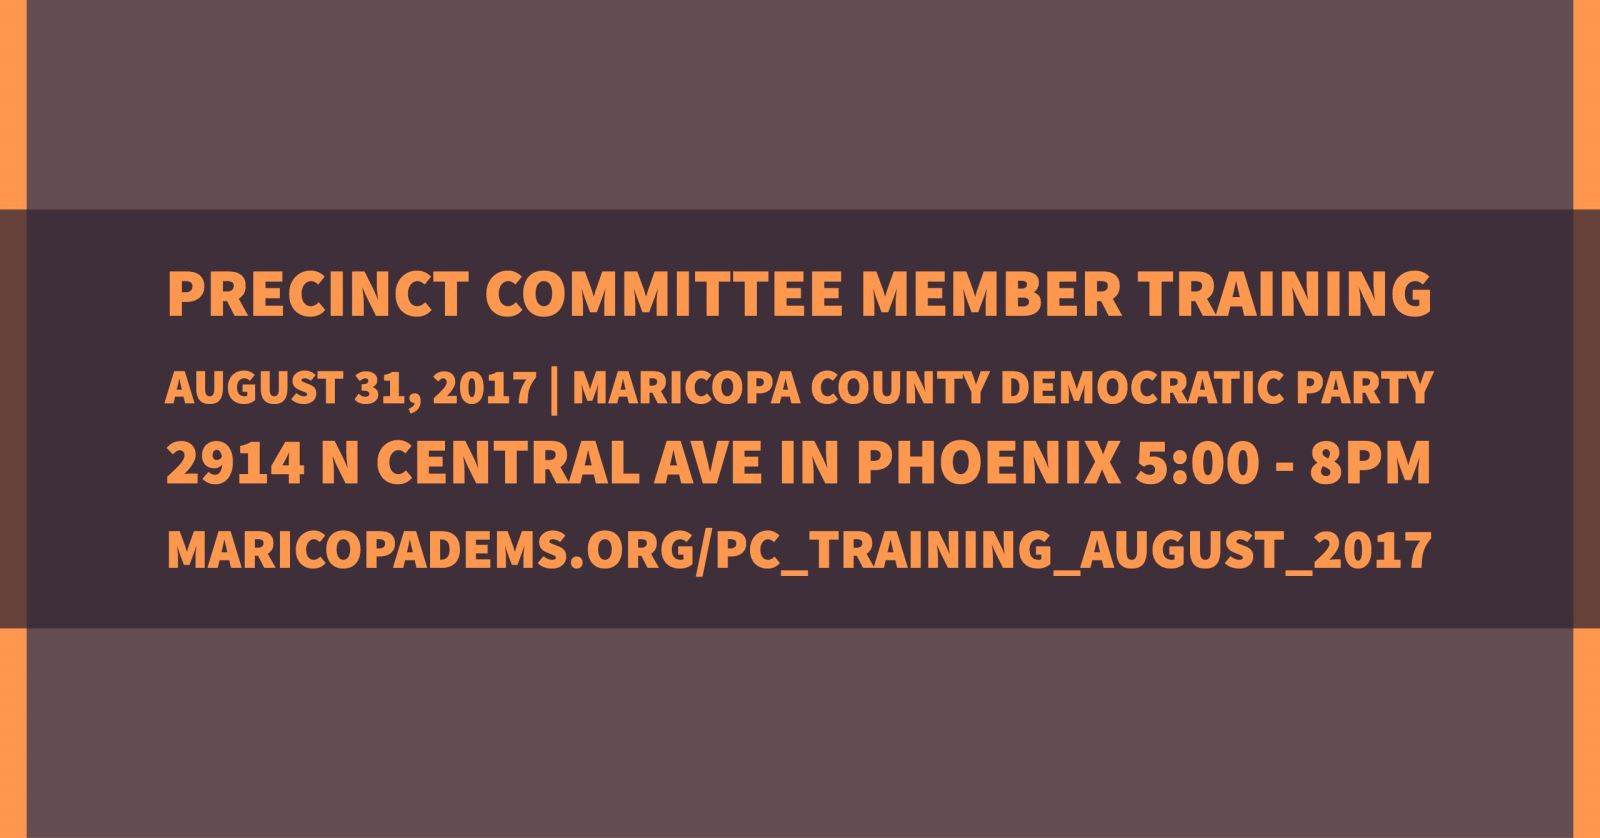 The Maricopa County Democratic Party